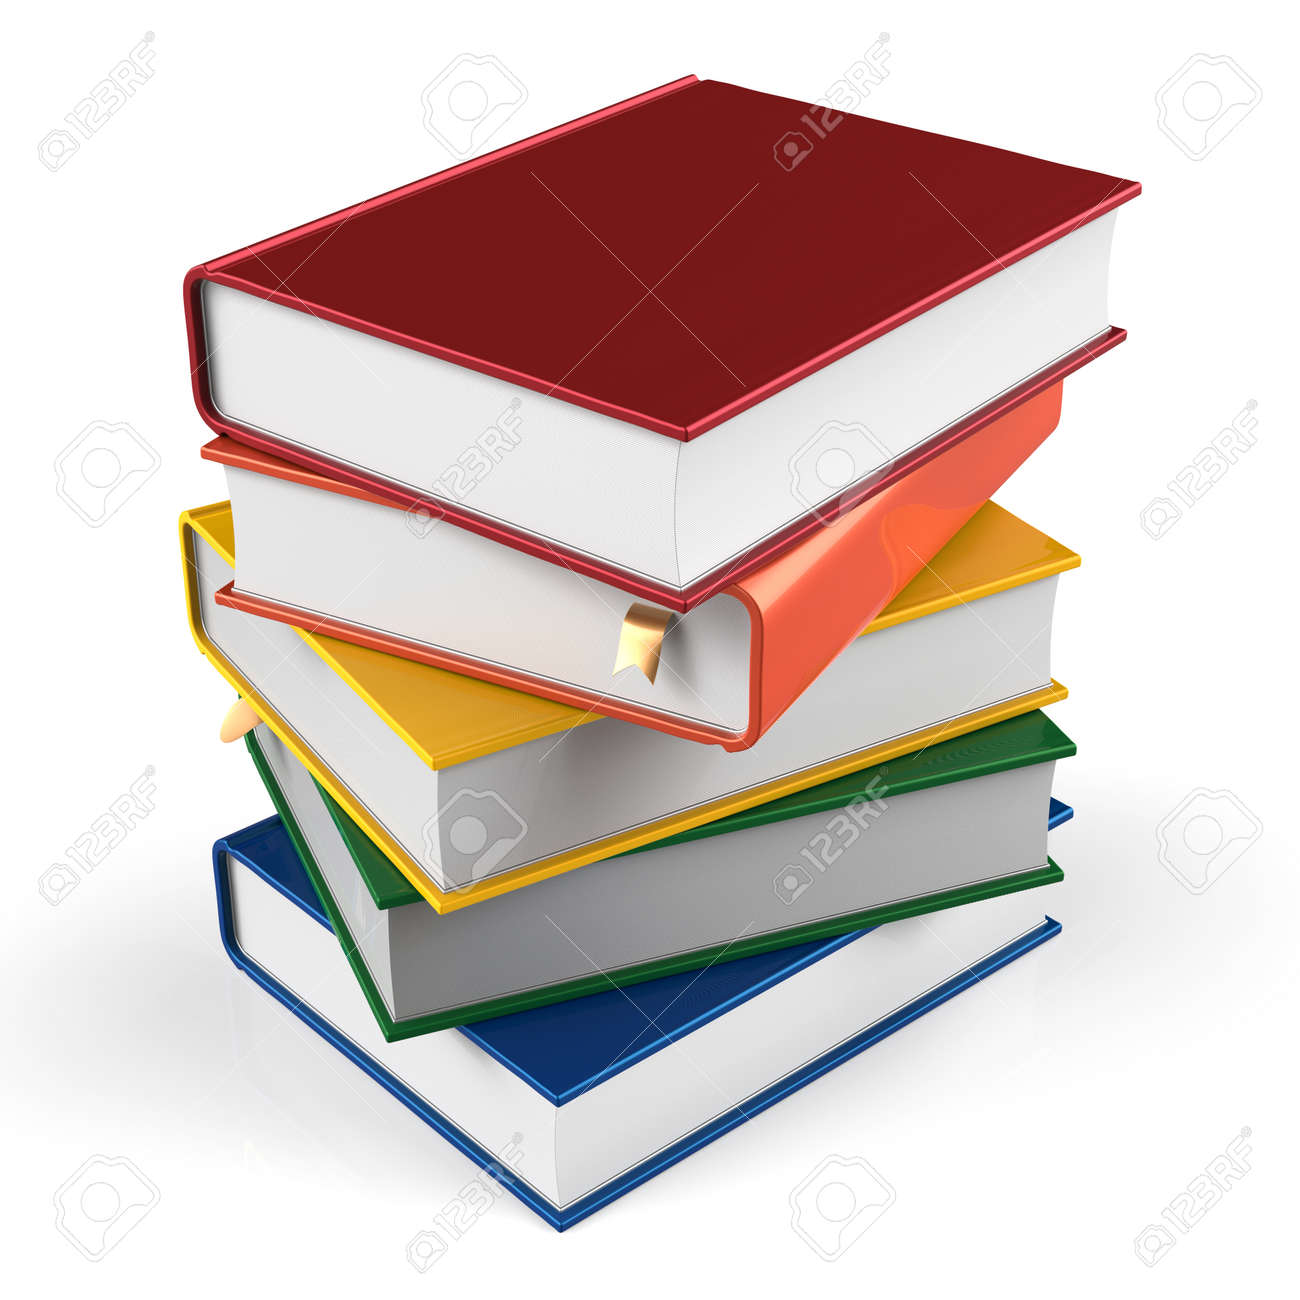 Book stack of textbooks blank hard covers colorful books bookmark school studying information content learn